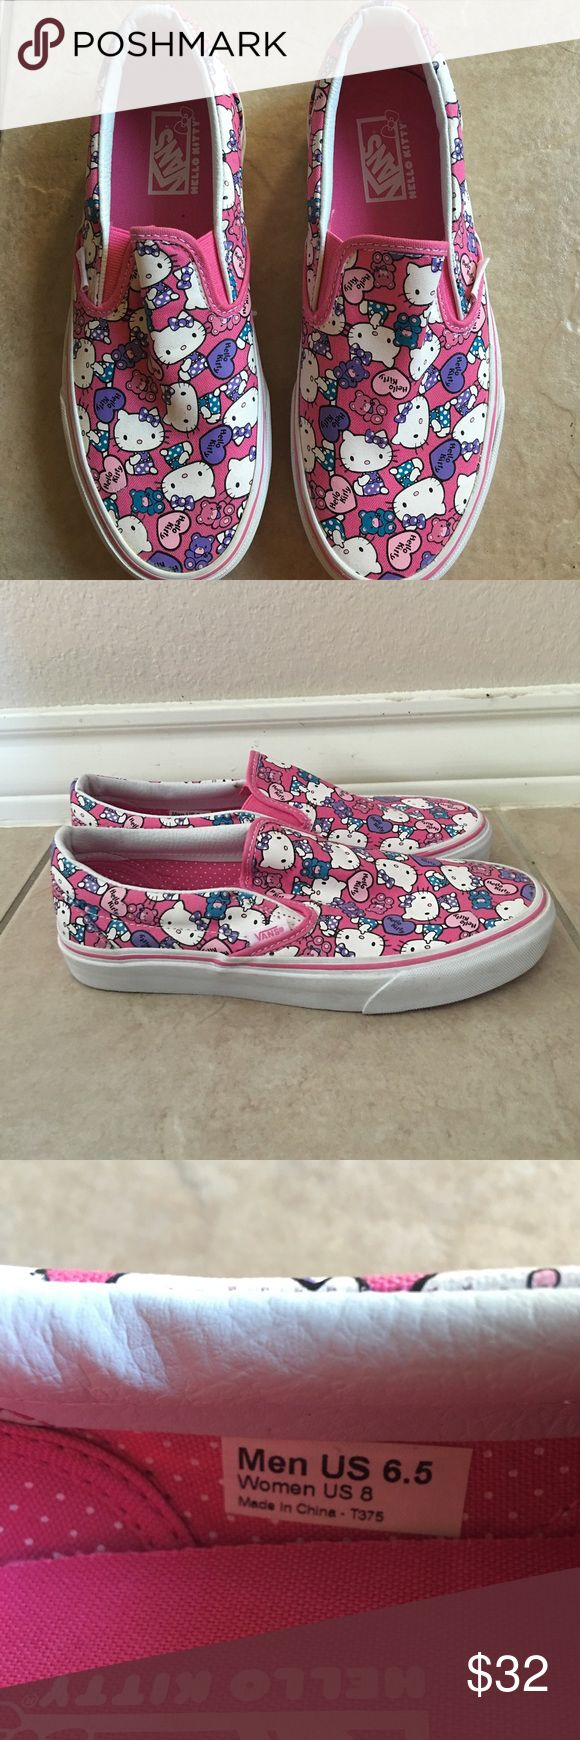 Hello Kitty Vans Slipons Hello Kitty Vans Slipons. Brand new. Hello Kitty print. Slip on. No signs of wear. Size 8. Vans Shoes Sneakers